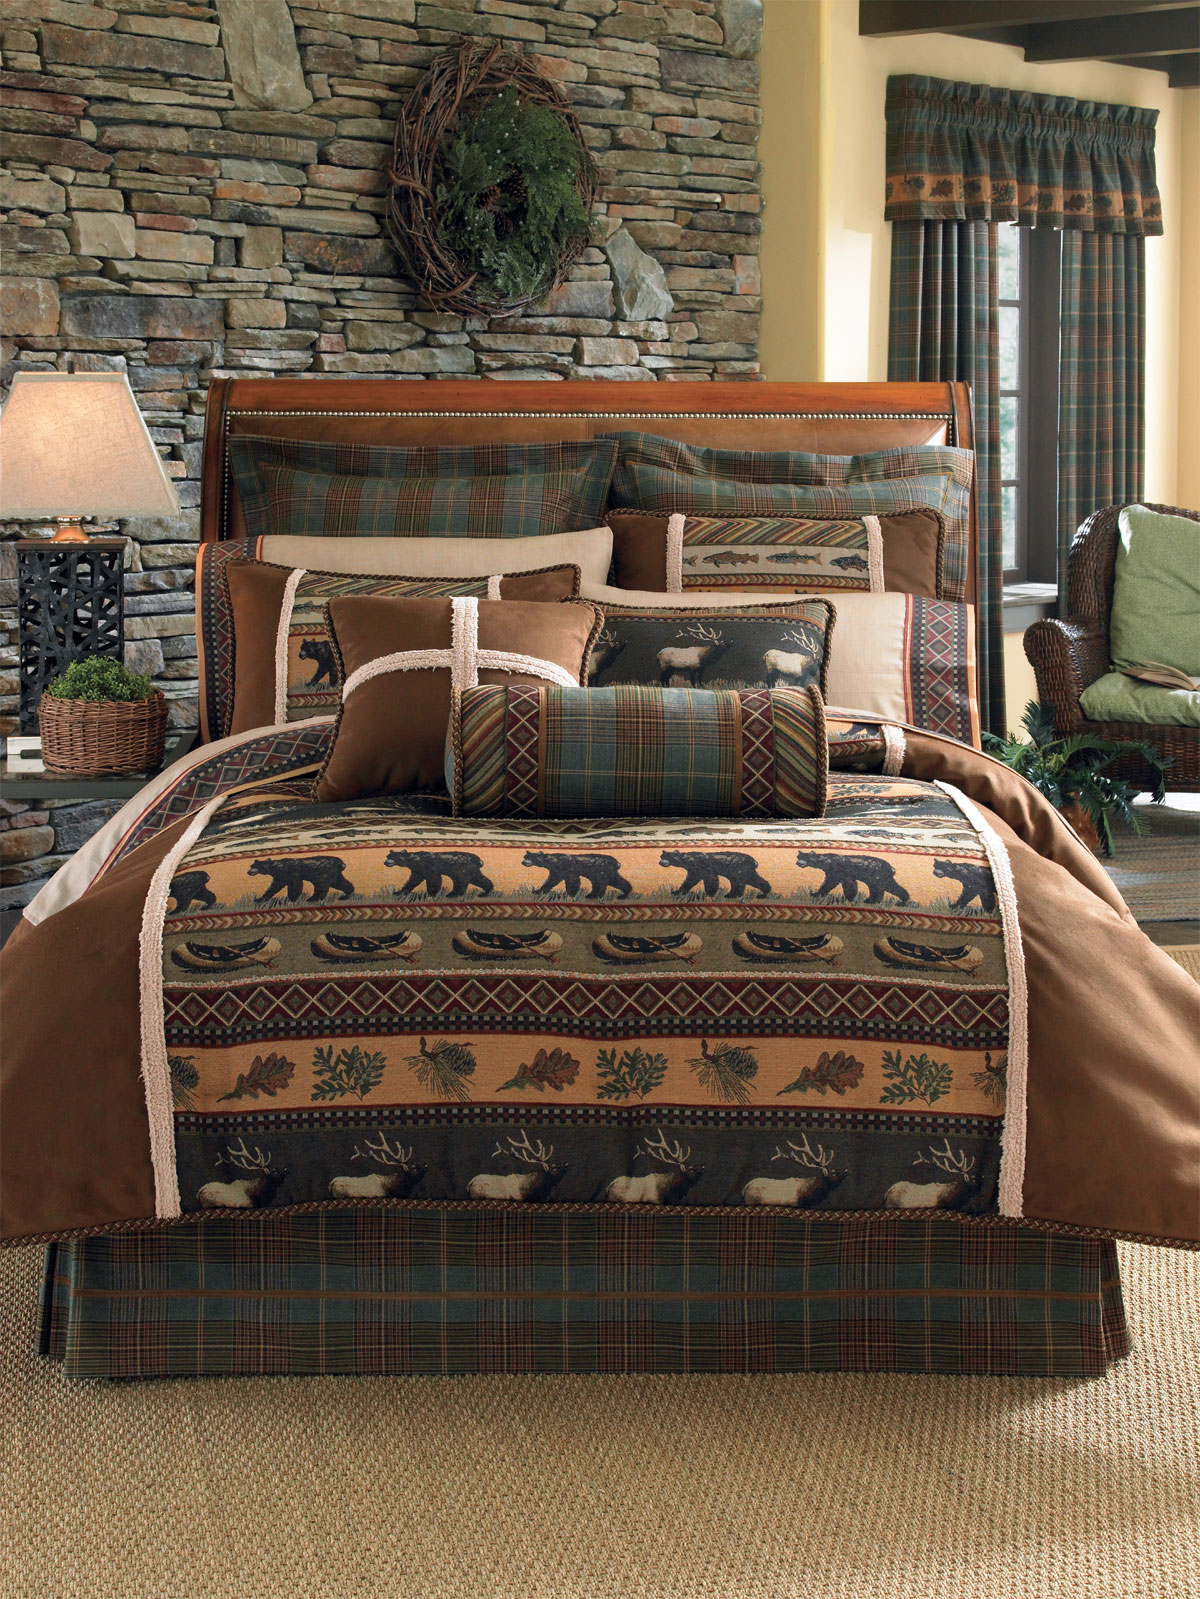 Caribou By Croscill Home Fashions Beddingsuperstore Com